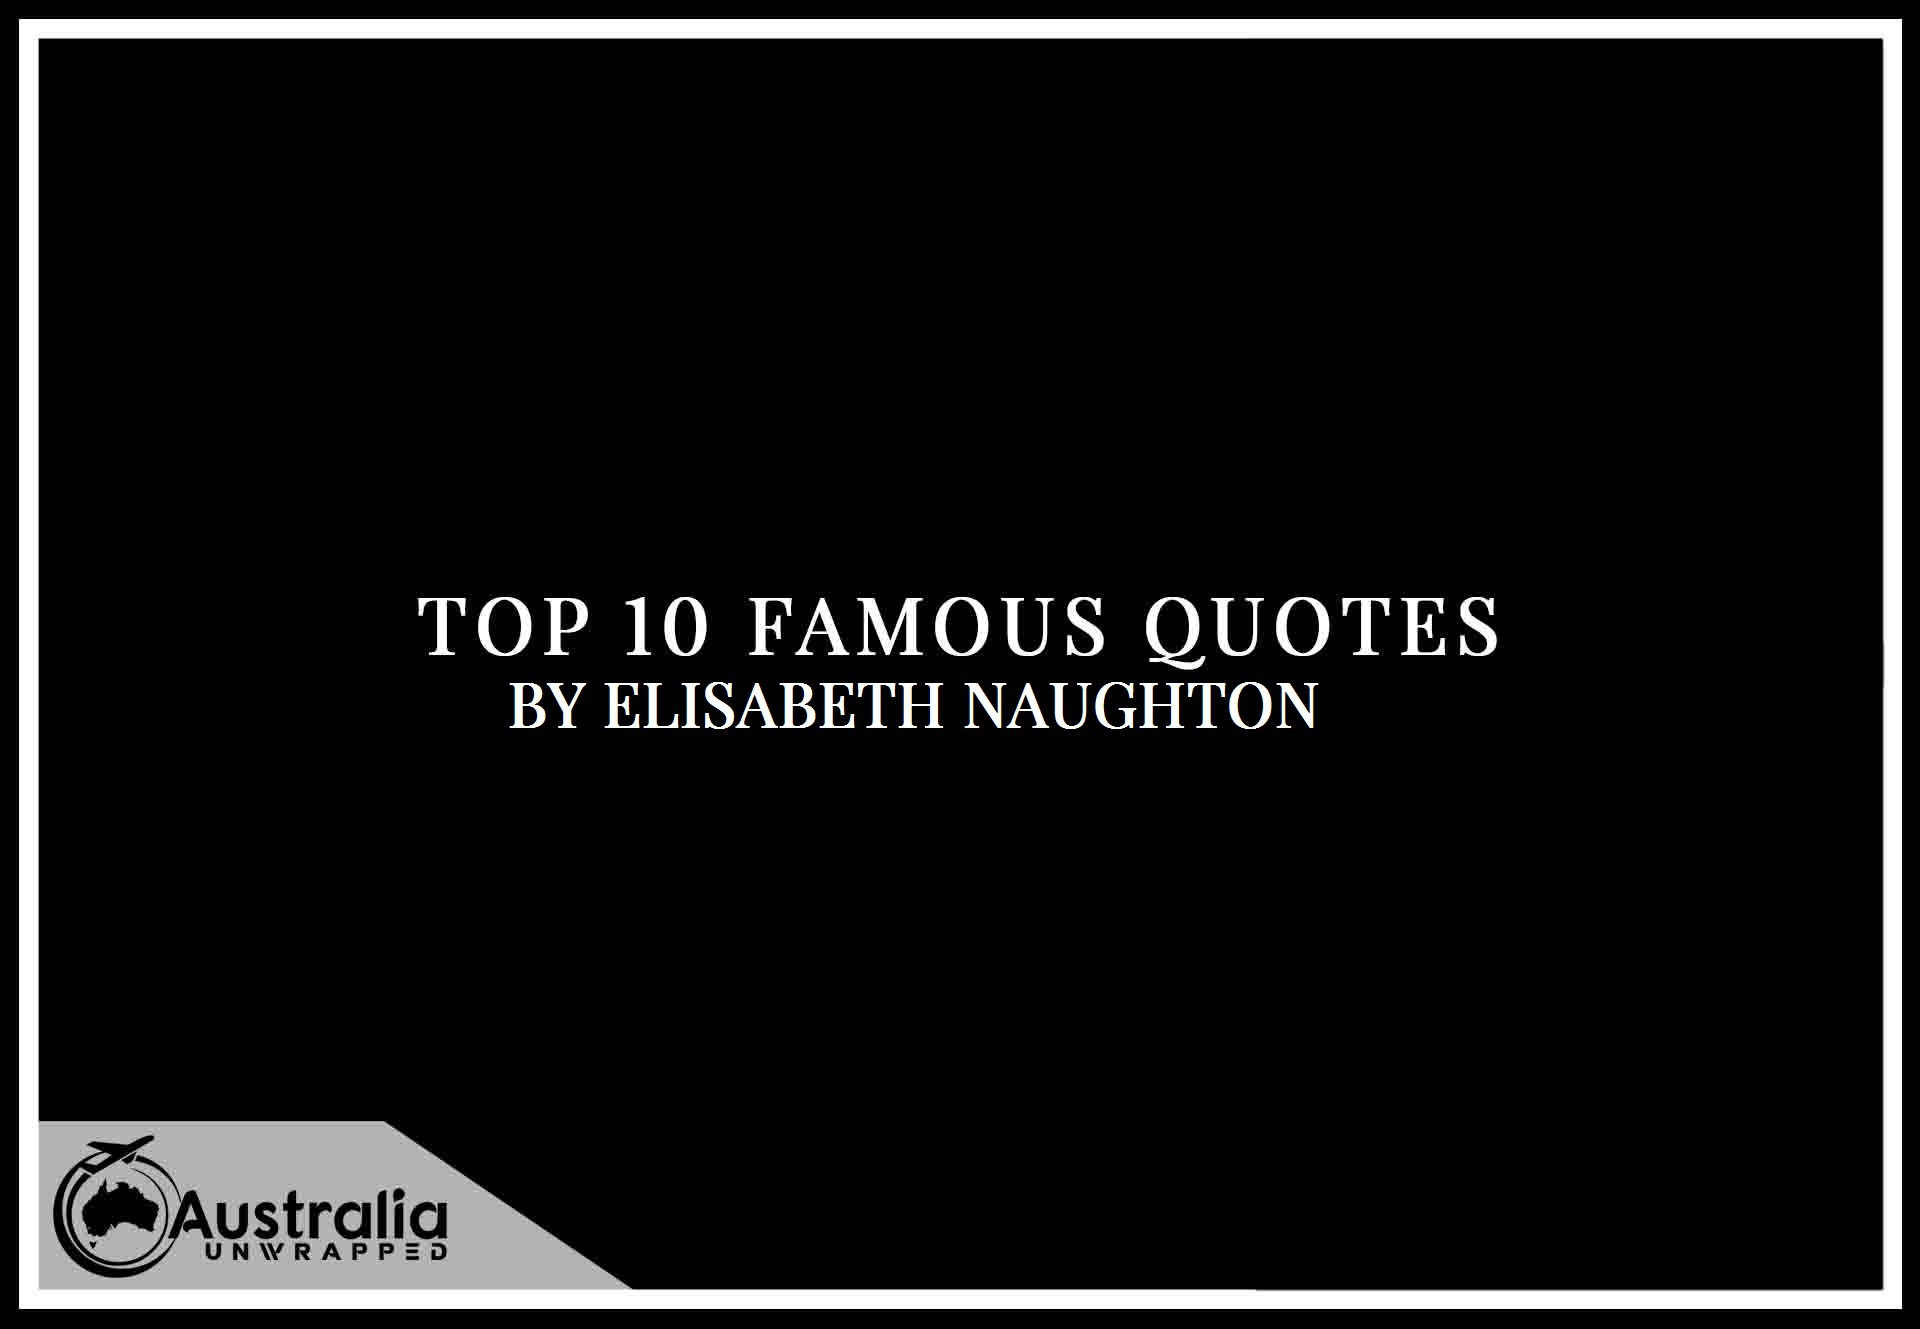 Elisabeth Naughton's Top 10 Popular and Famous Quotes